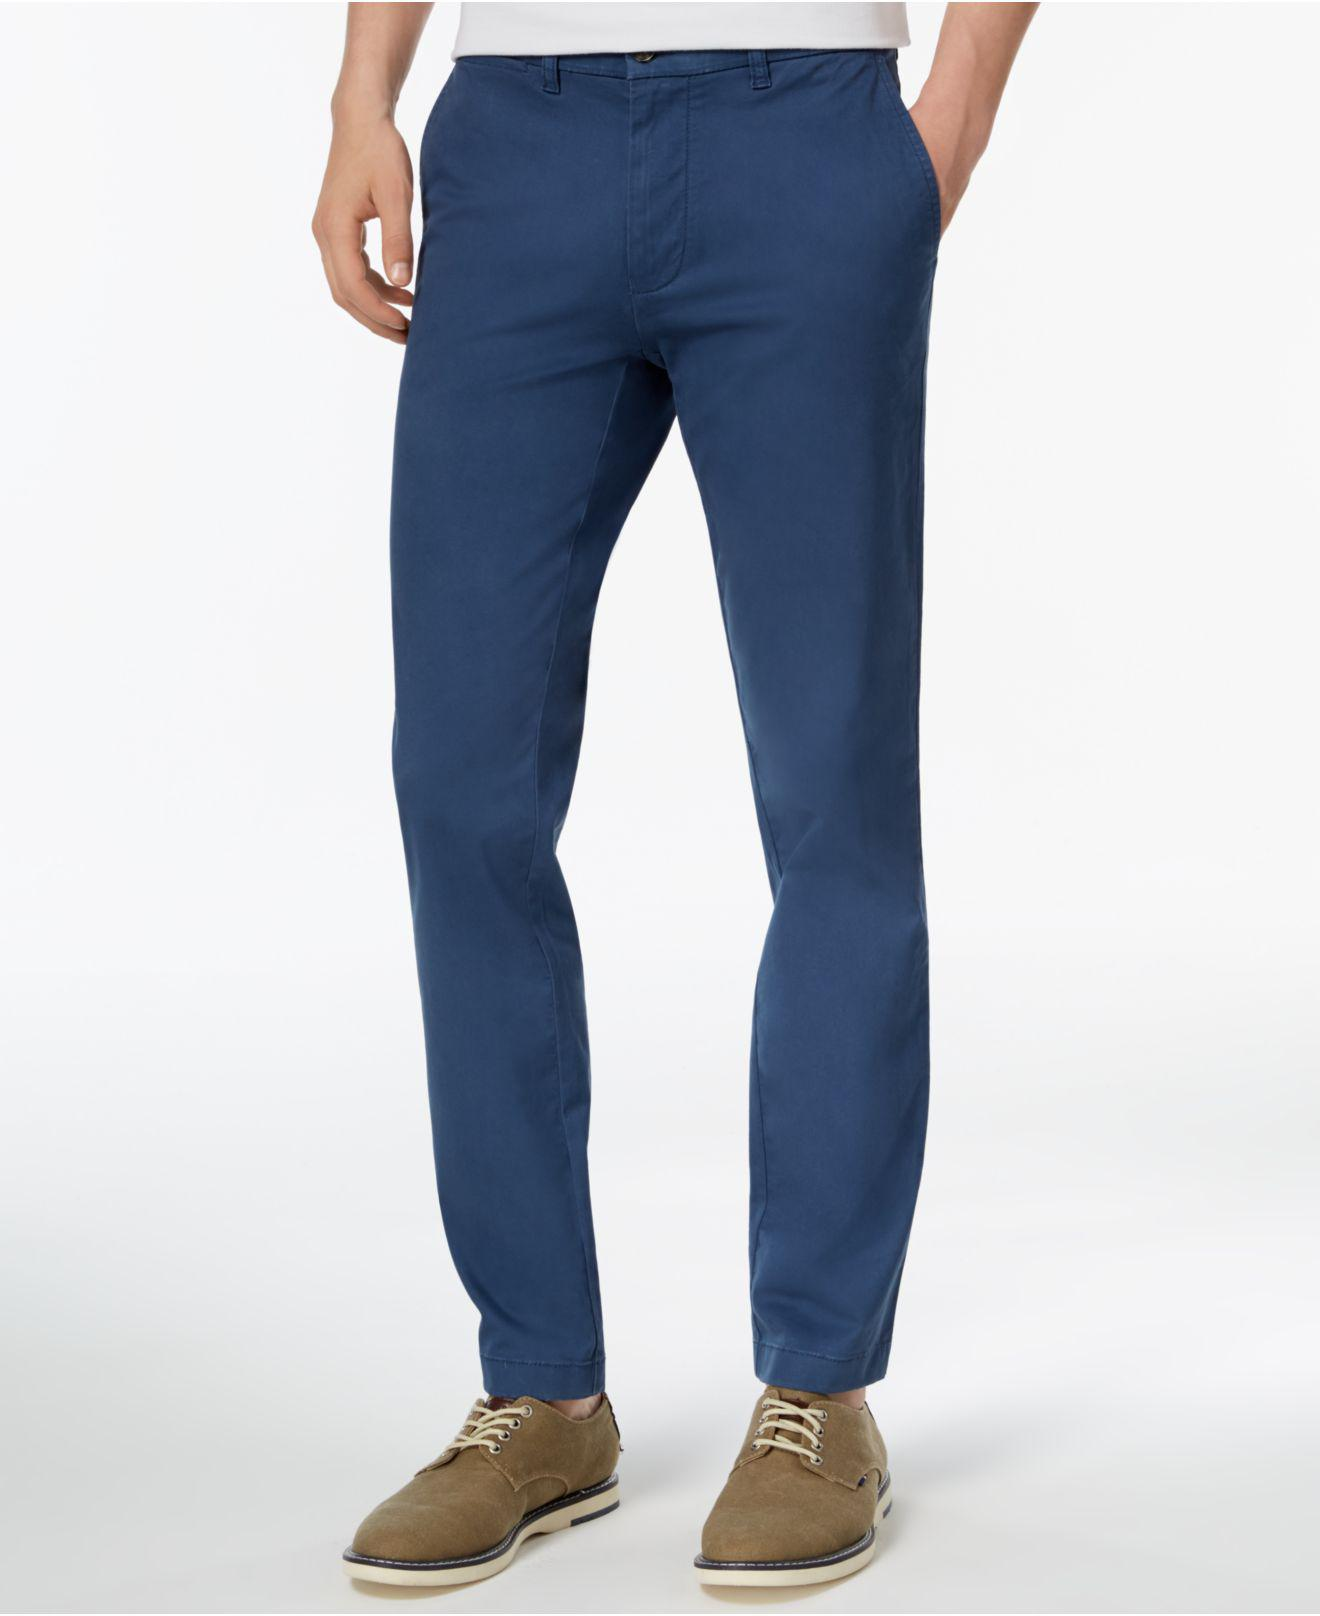 d11a31b1c Tommy Hilfiger Th Flex Stretch Slim-fit Chino Pants, Created For ...